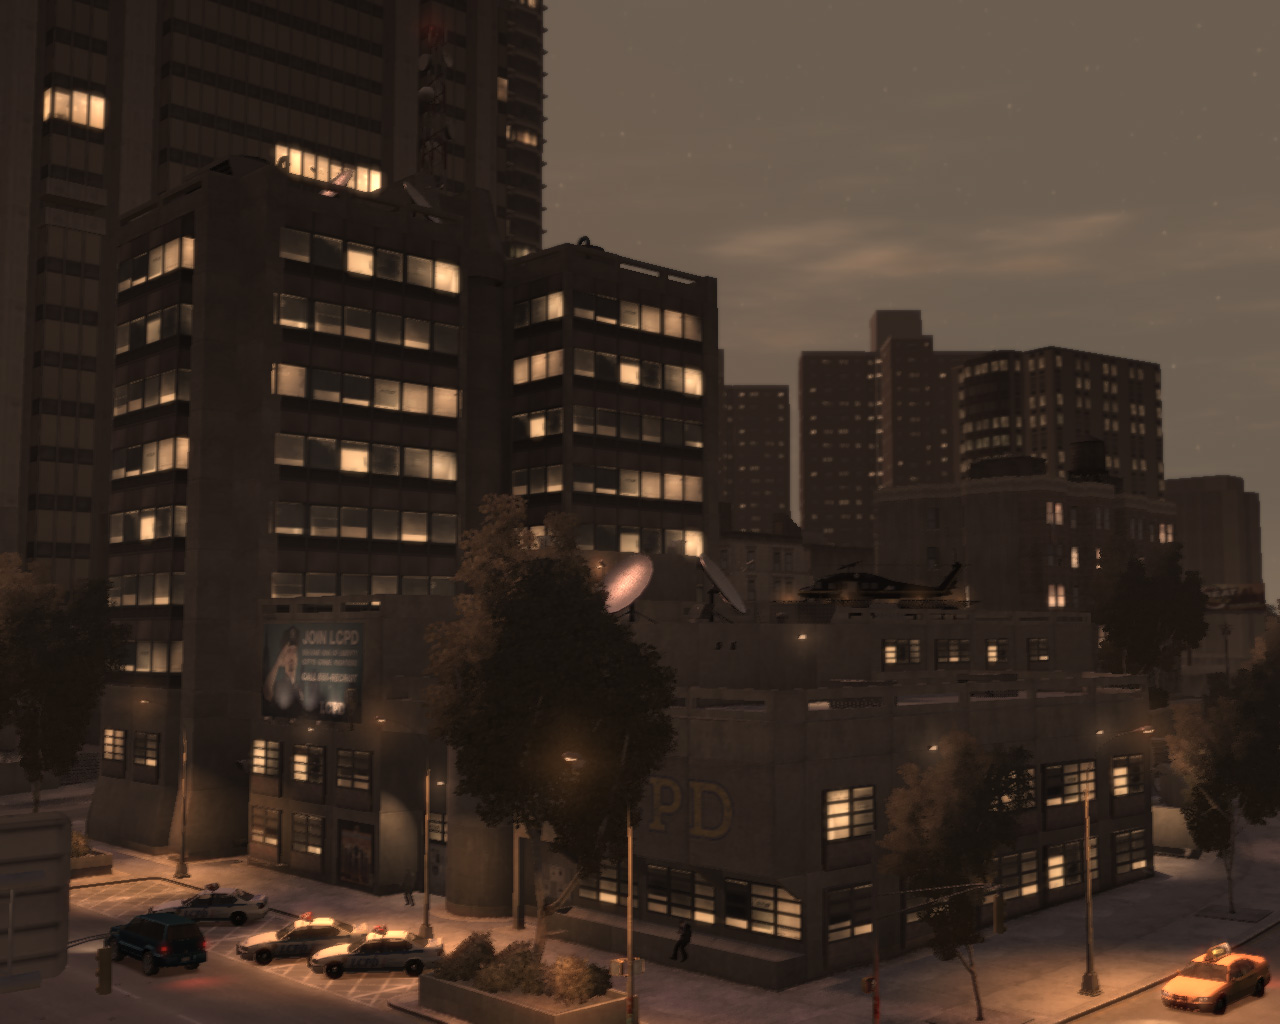 EastHollandpolicedepartment-GTA4-exterior.jpg